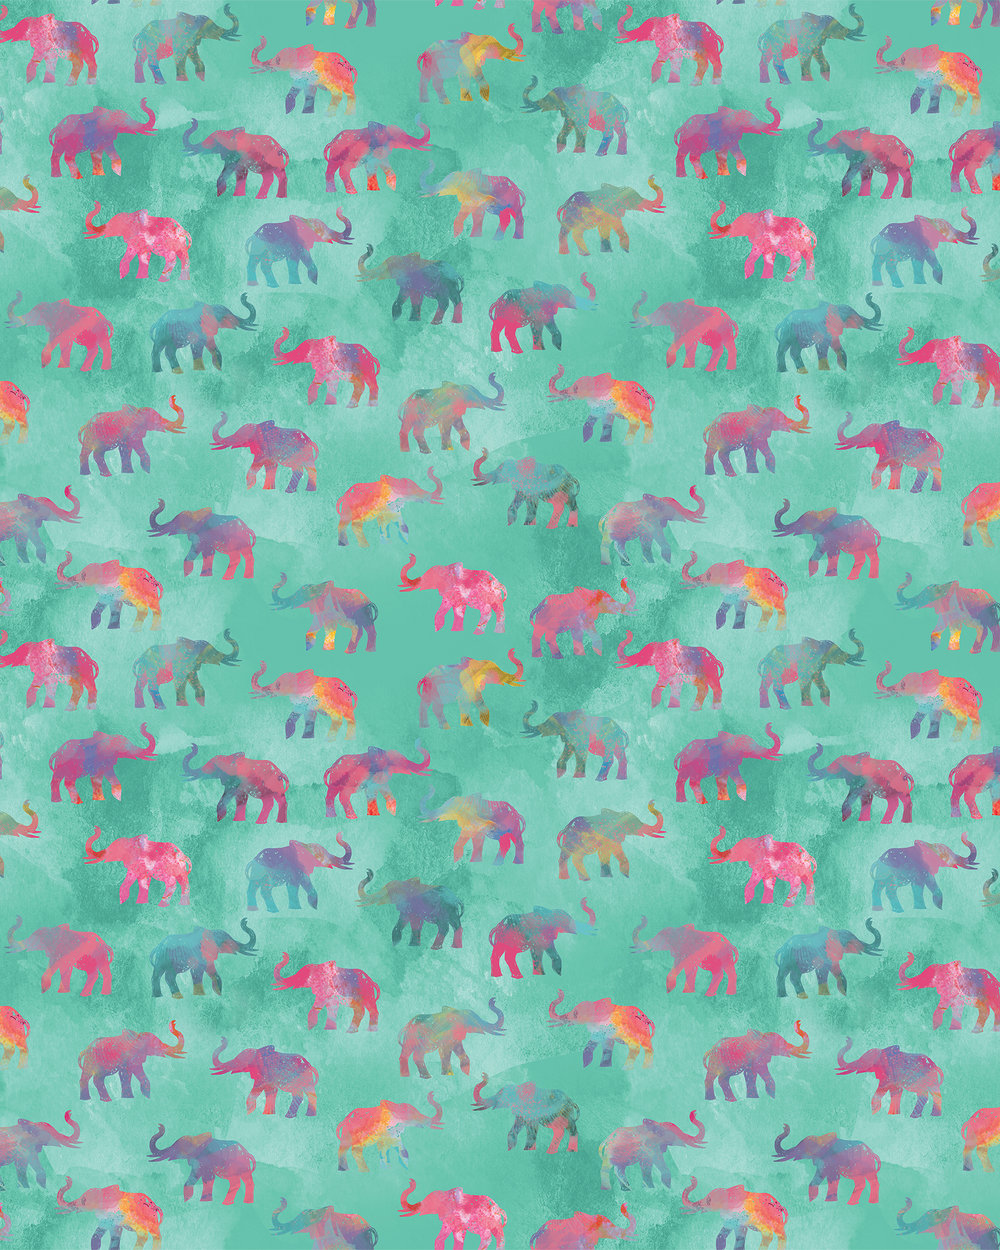 Rainbow Elephants on Parade